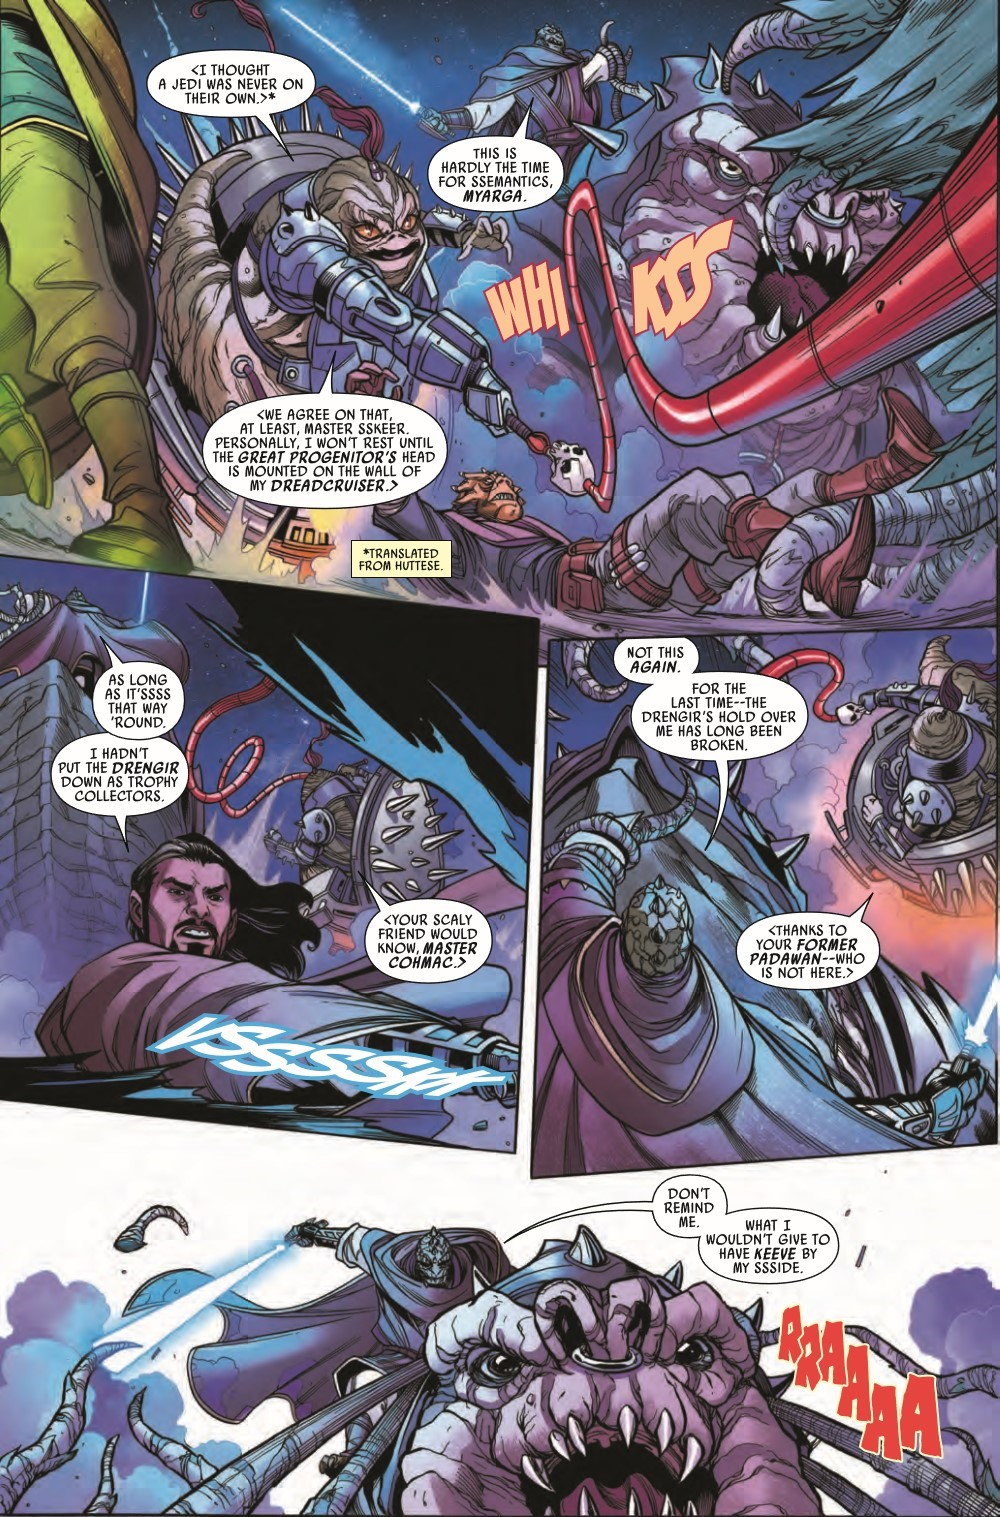 STWHIGHREP2021008_Preview-6 ComicList Previews: STAR WARS THE HIGH REPUBLIC #8